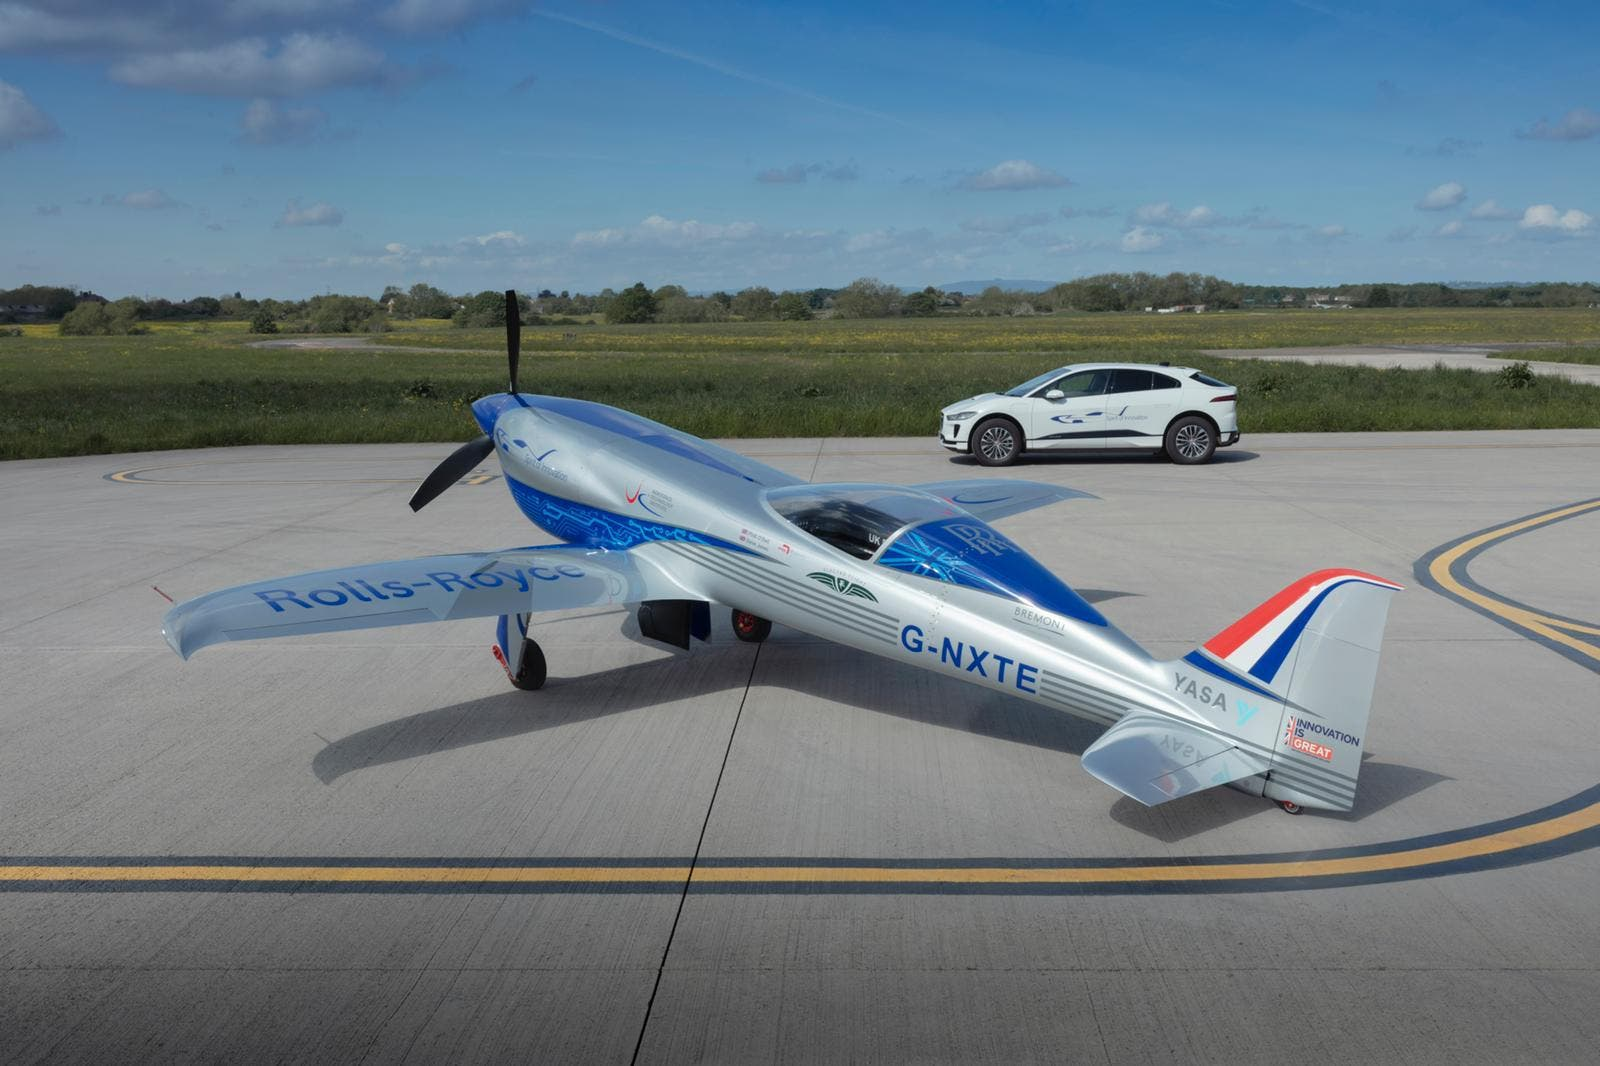 Rolls-Royce Attempting 100% Electric Aircraft Speed Record, Jaguar I-PACE Offering Ground Support